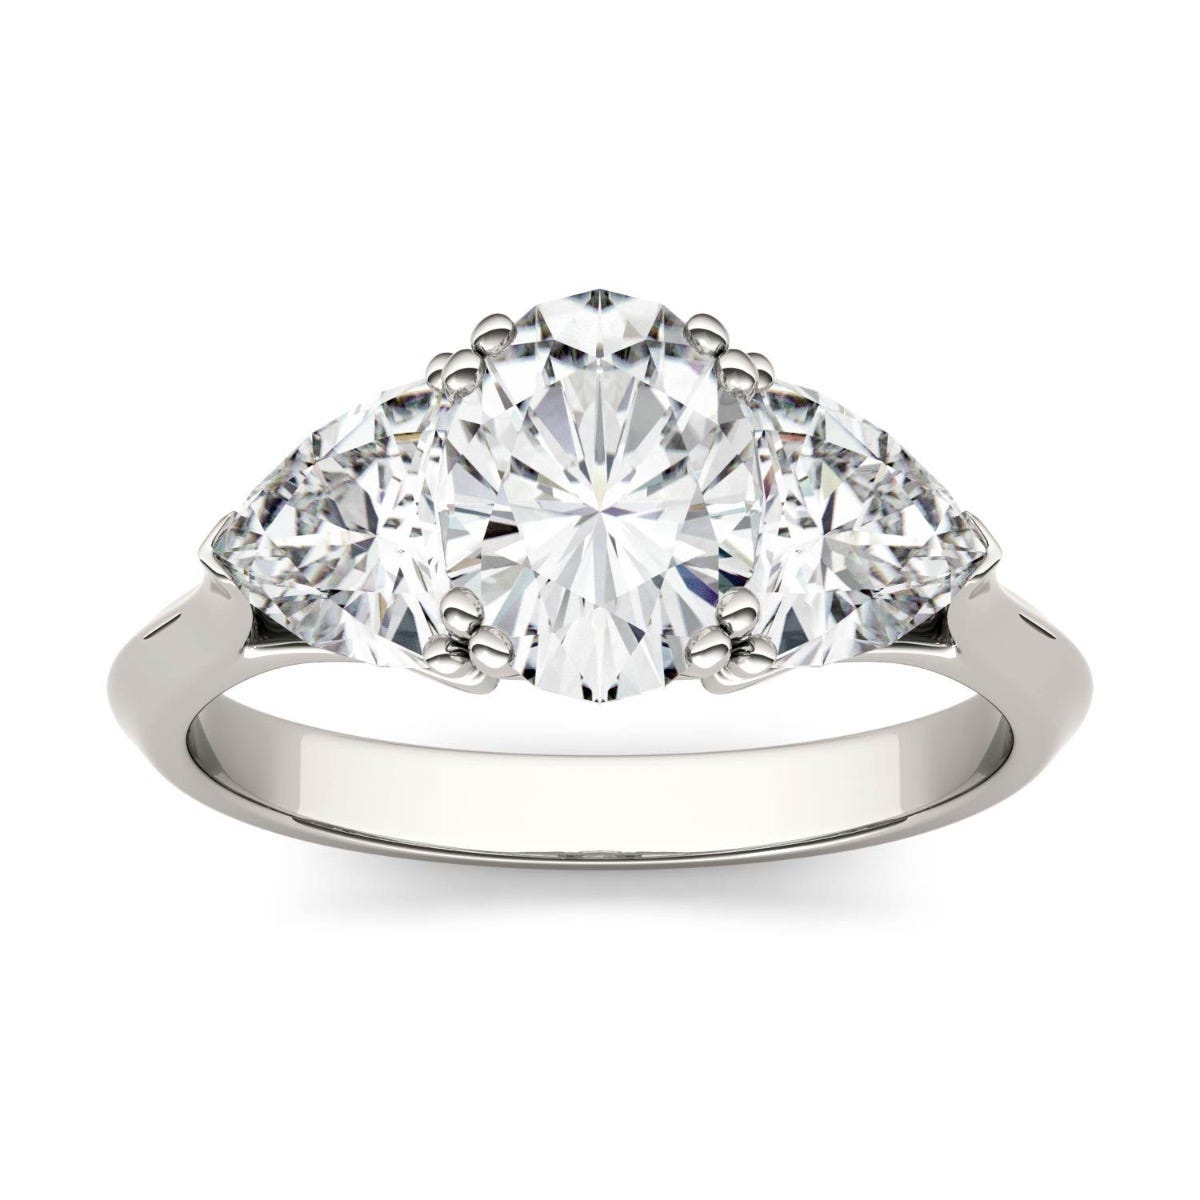 Three stone white gold Moissanite engagement ring.